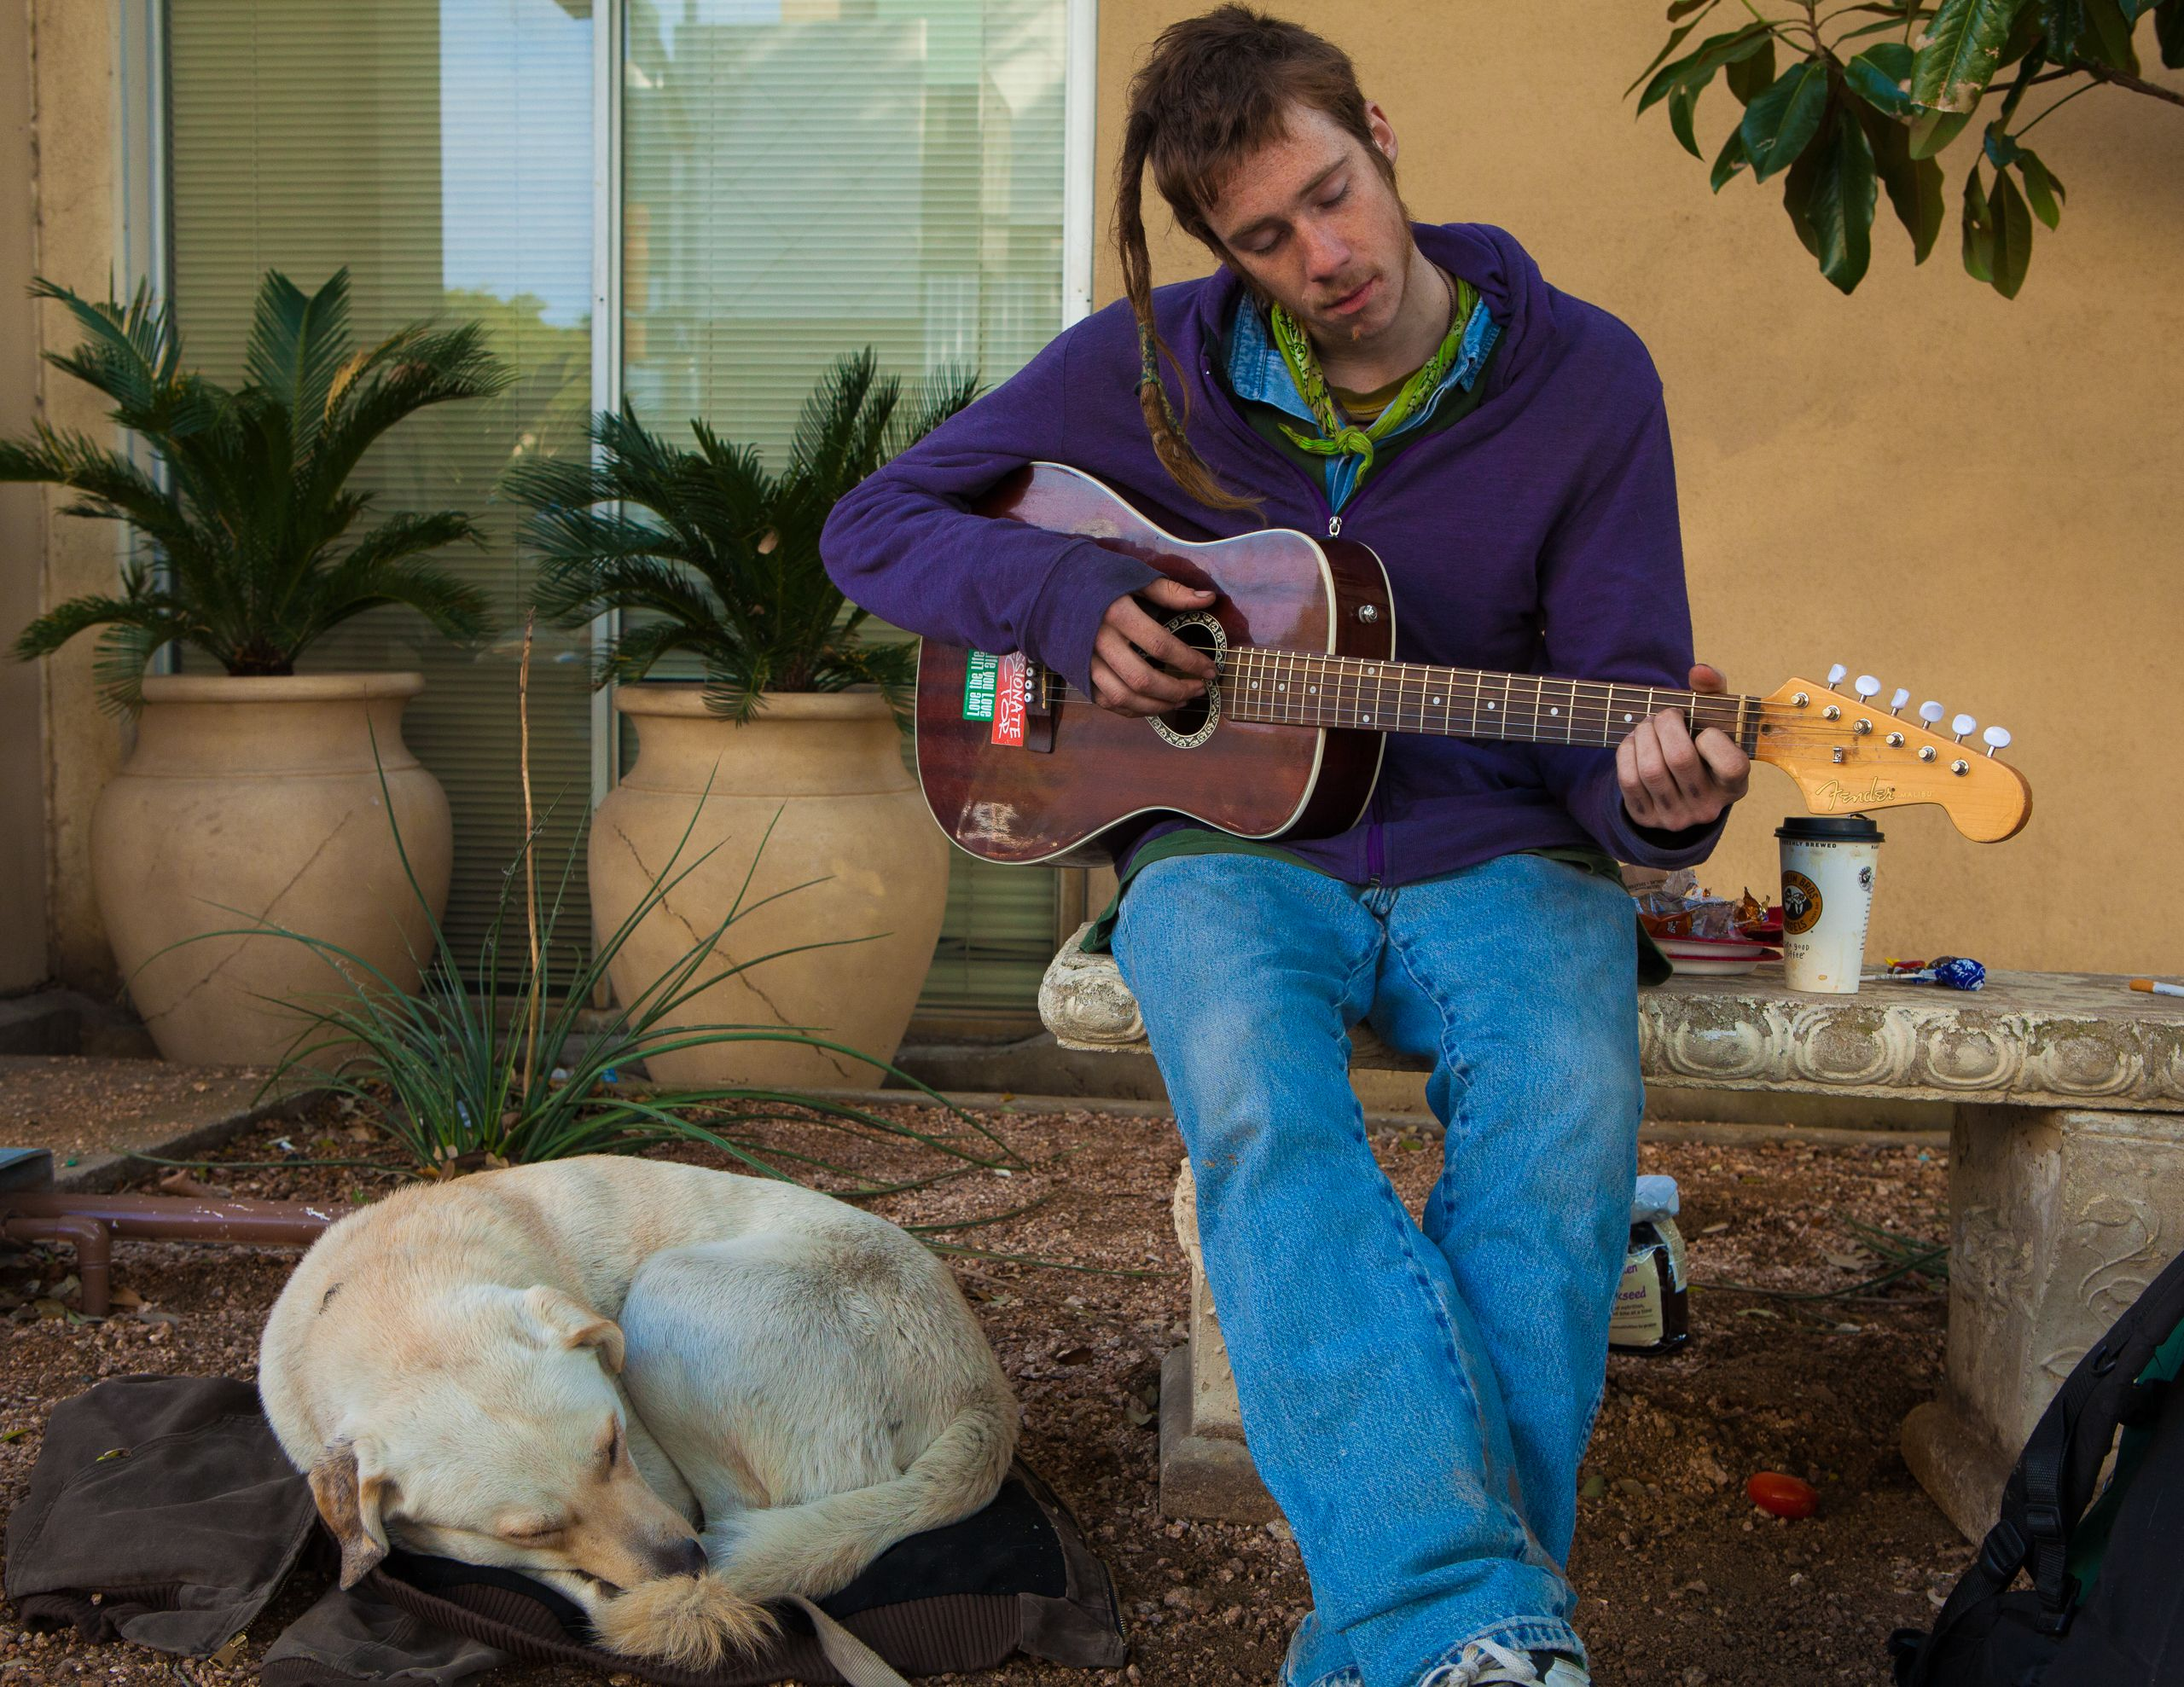 Guitar Player and Dog